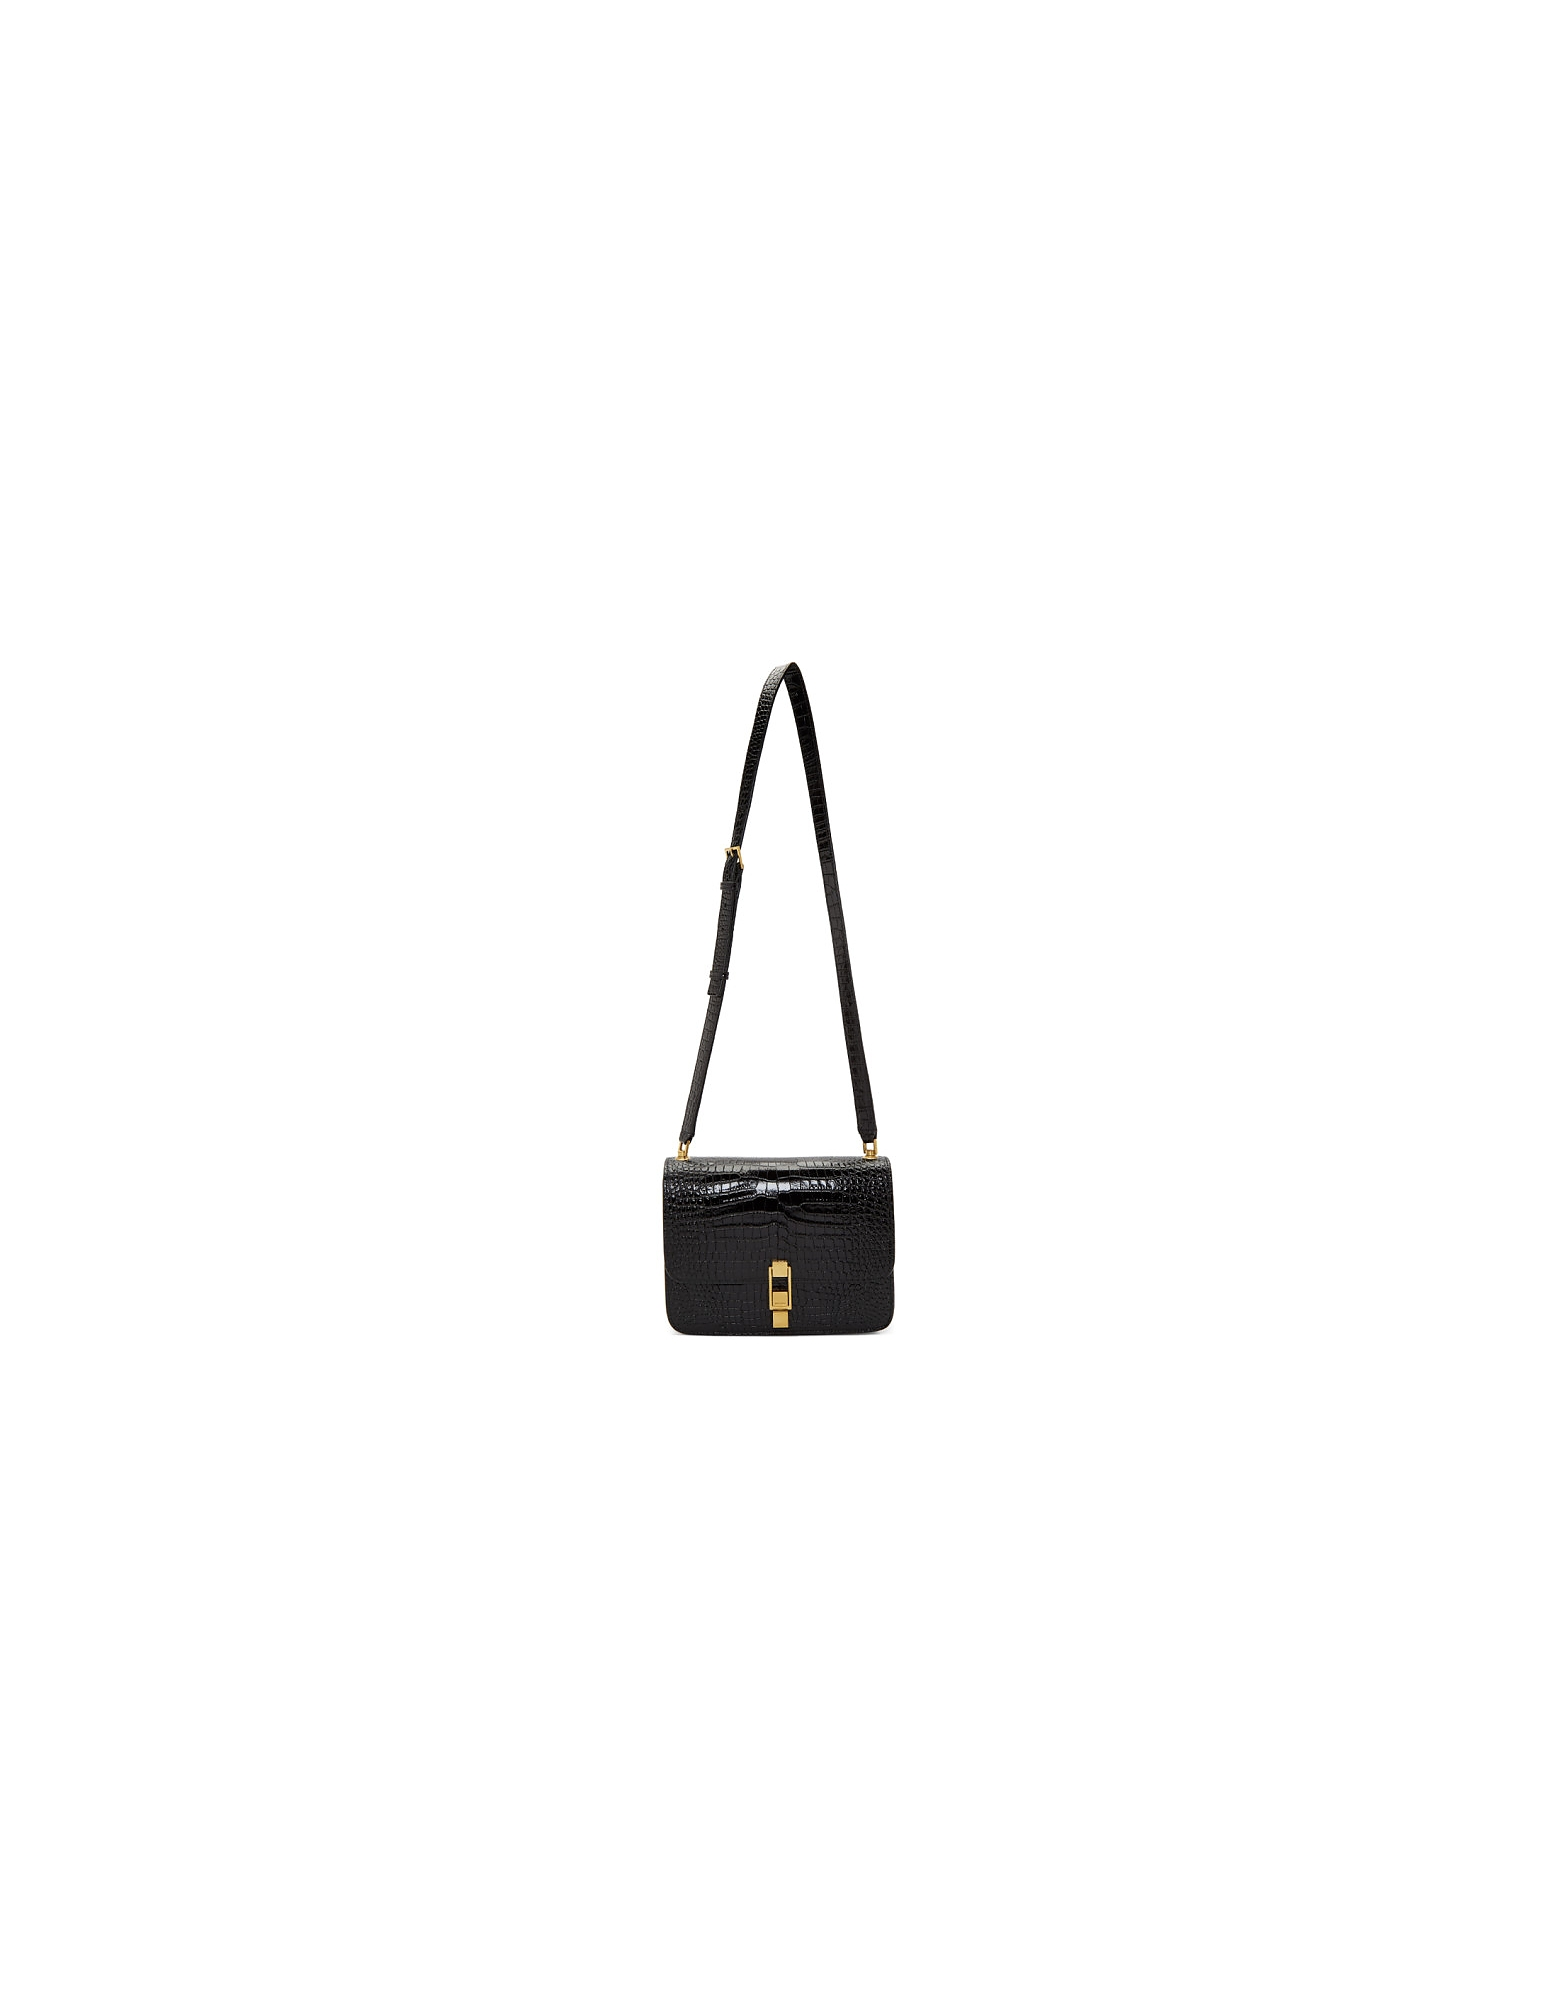 Saint Laurent Designer Handbags, Black Croc Carre Satchel Bag